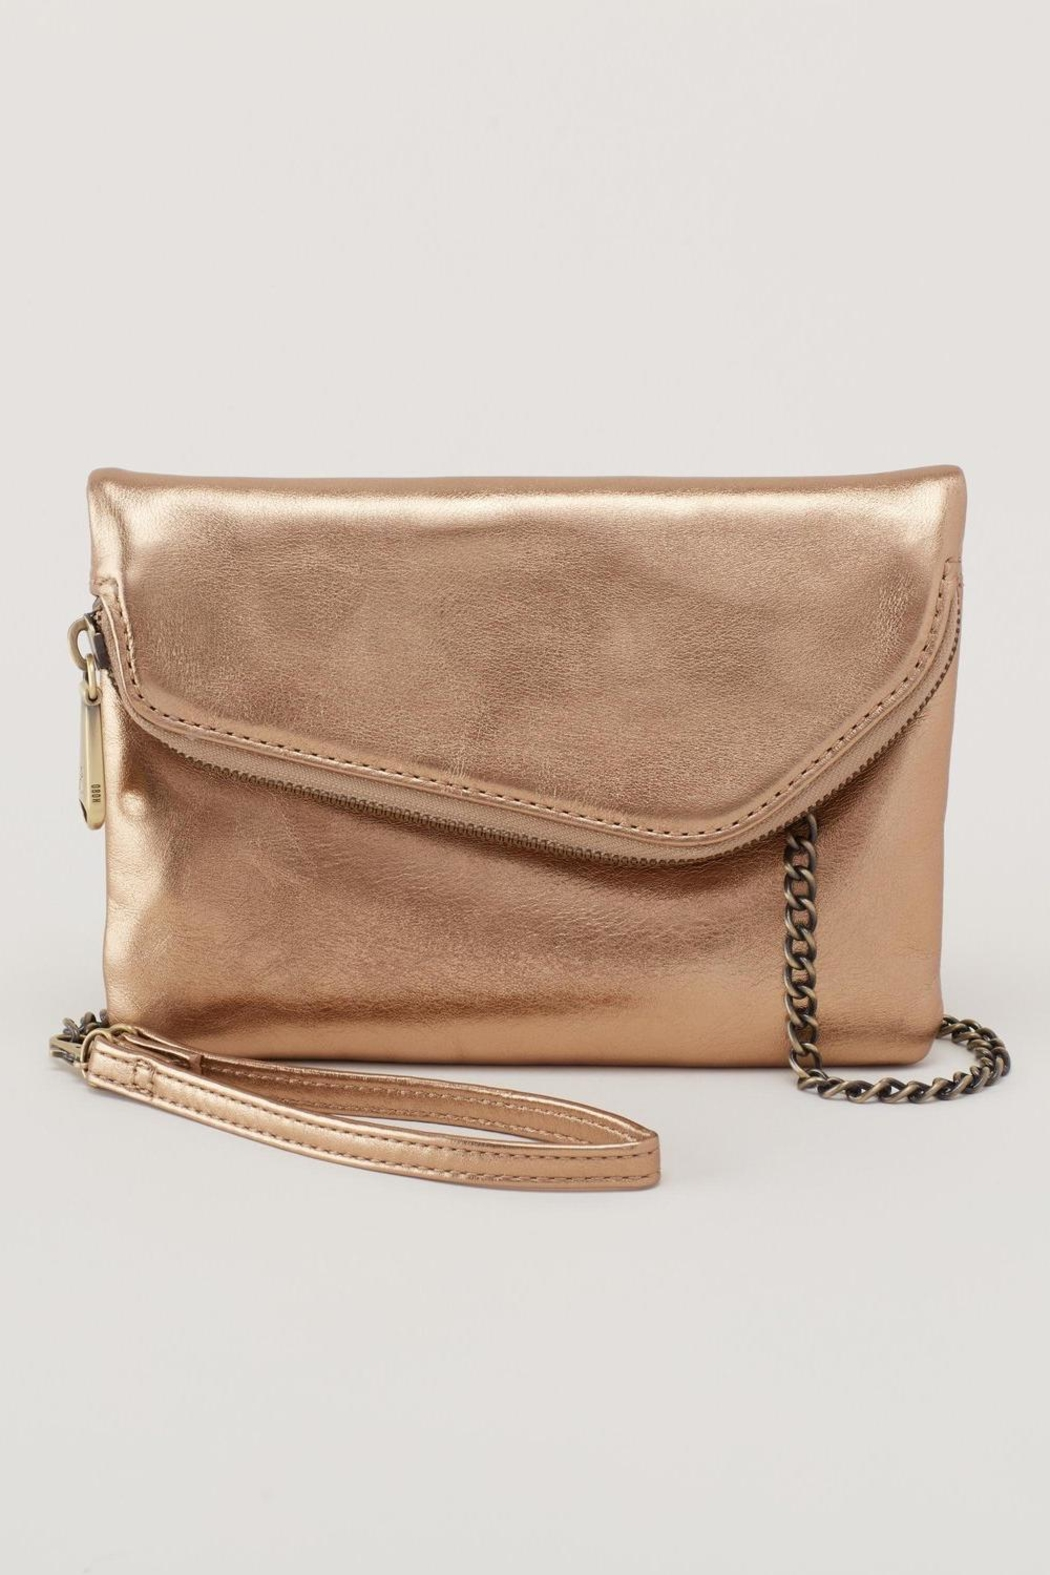 20e7c39f21 Hobo Daria Crossbody Clutch from New Jersey by free shop — Shoptiques